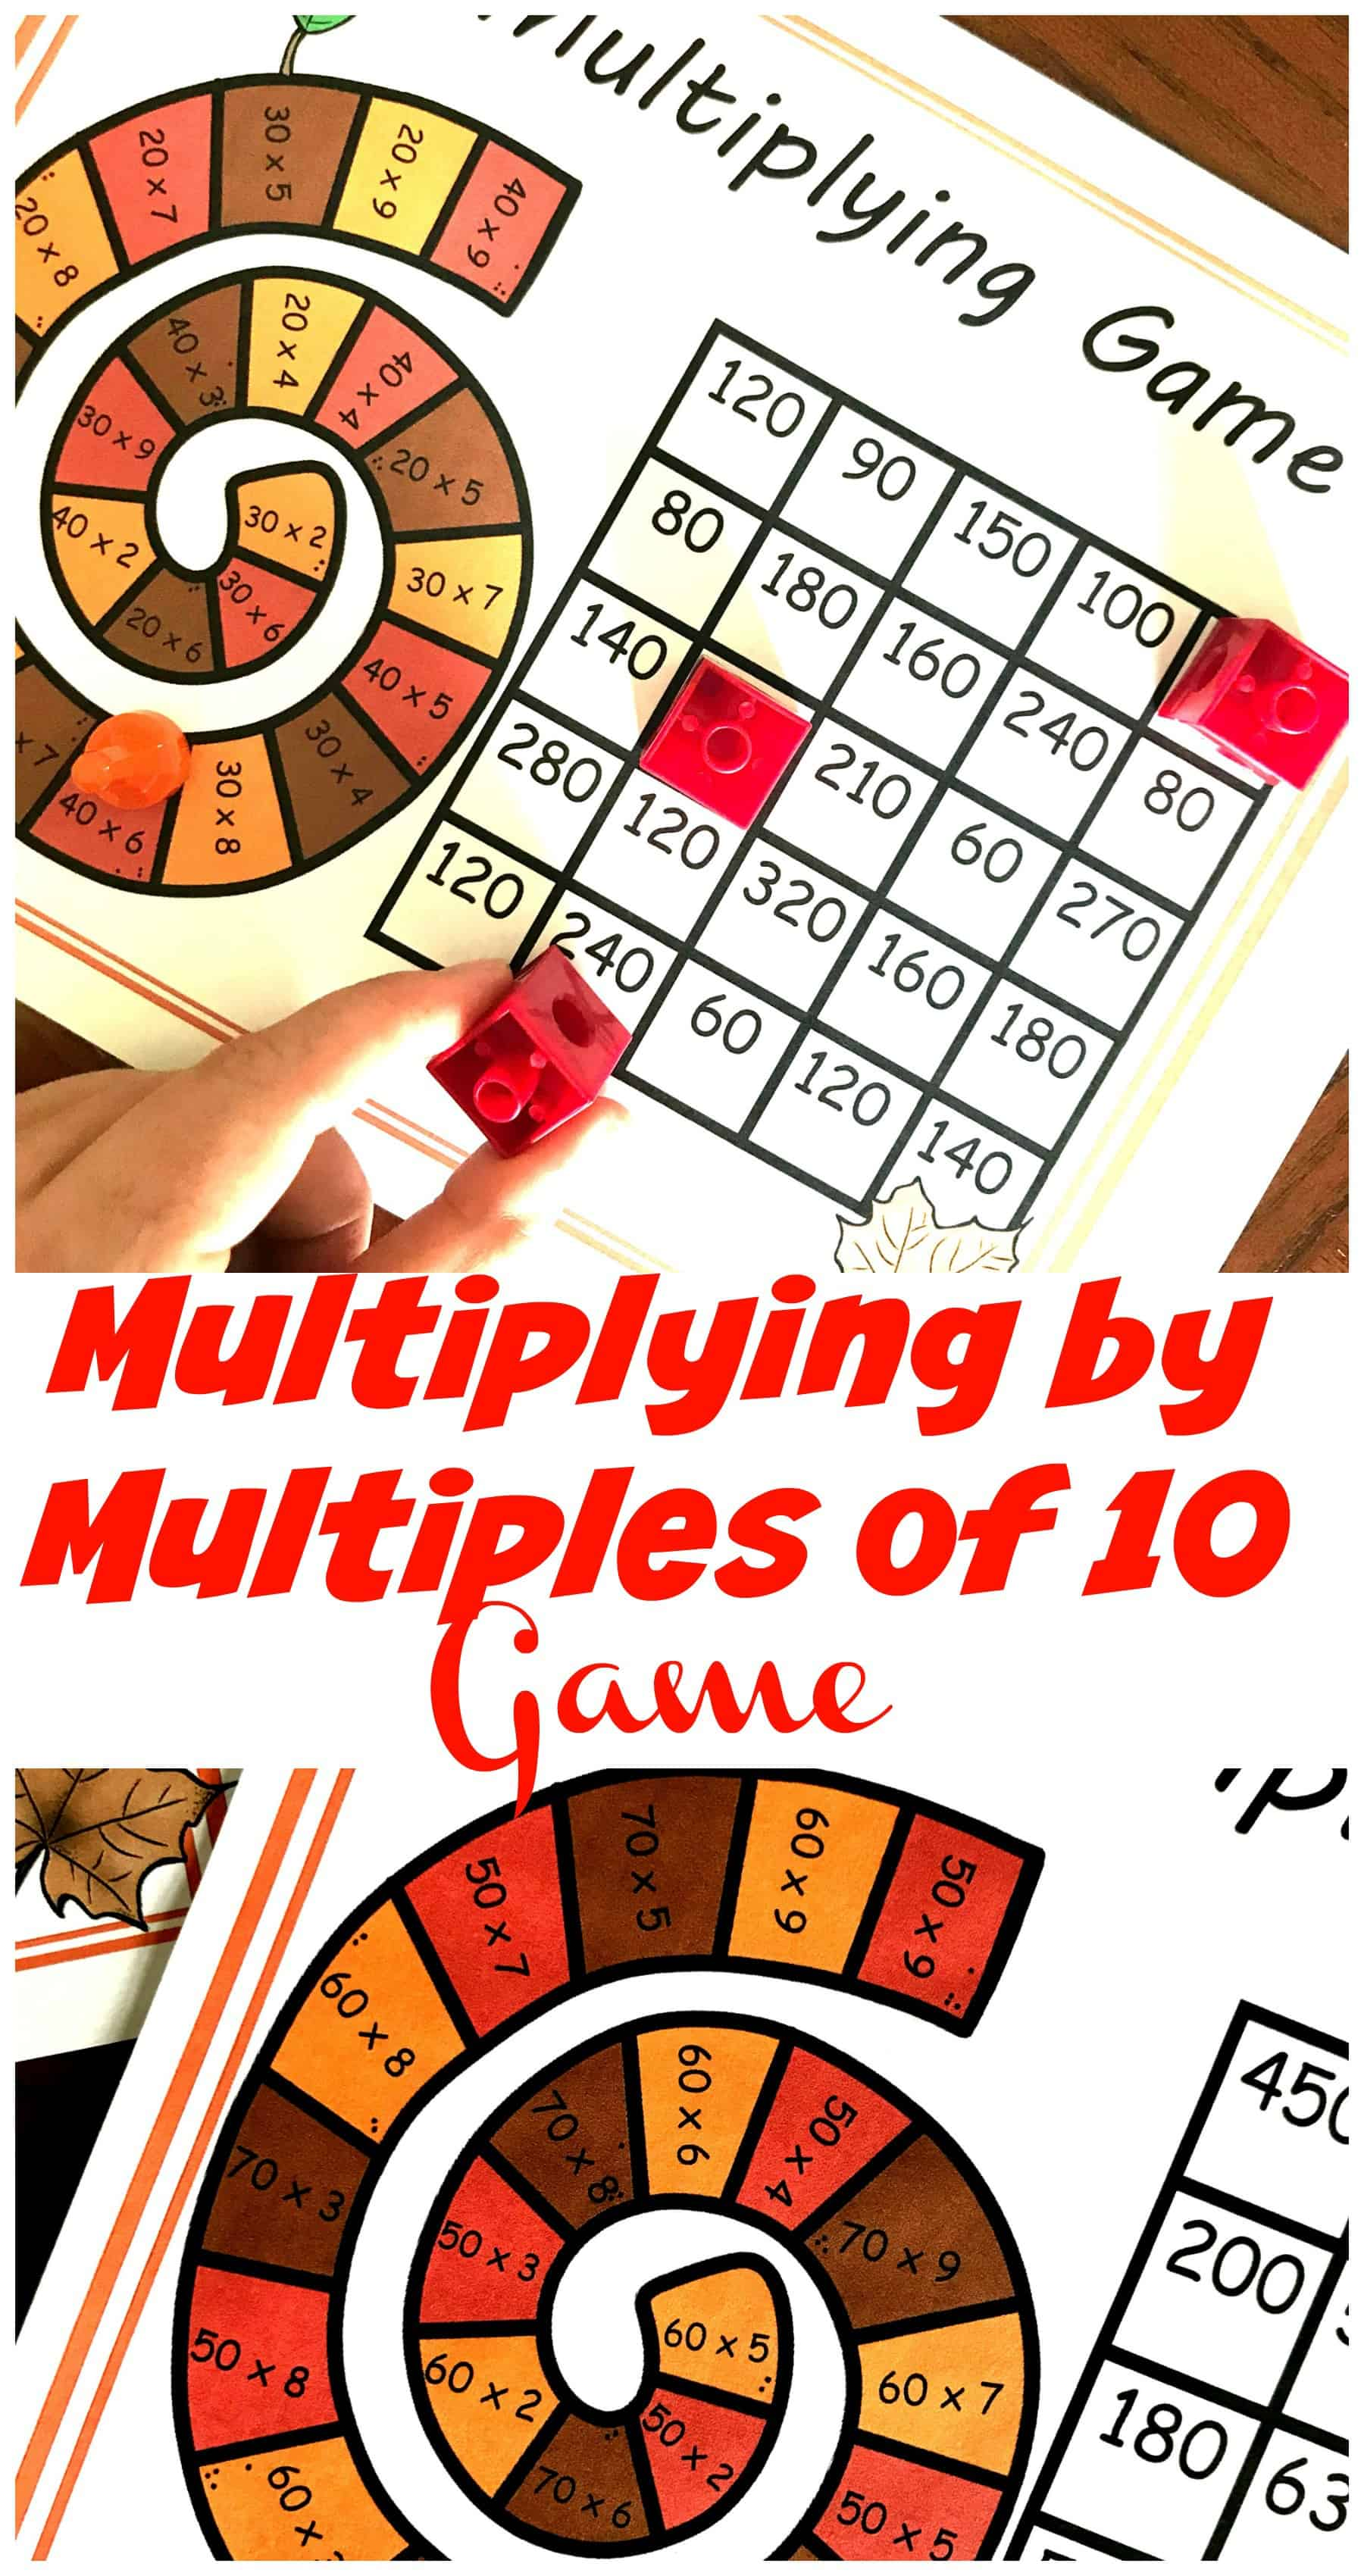 This free, no-prep game gets children multiplying by multiples of 10. Have fun working on multiply one-digit whole numbers by multiples of 10 in the range 20-90!